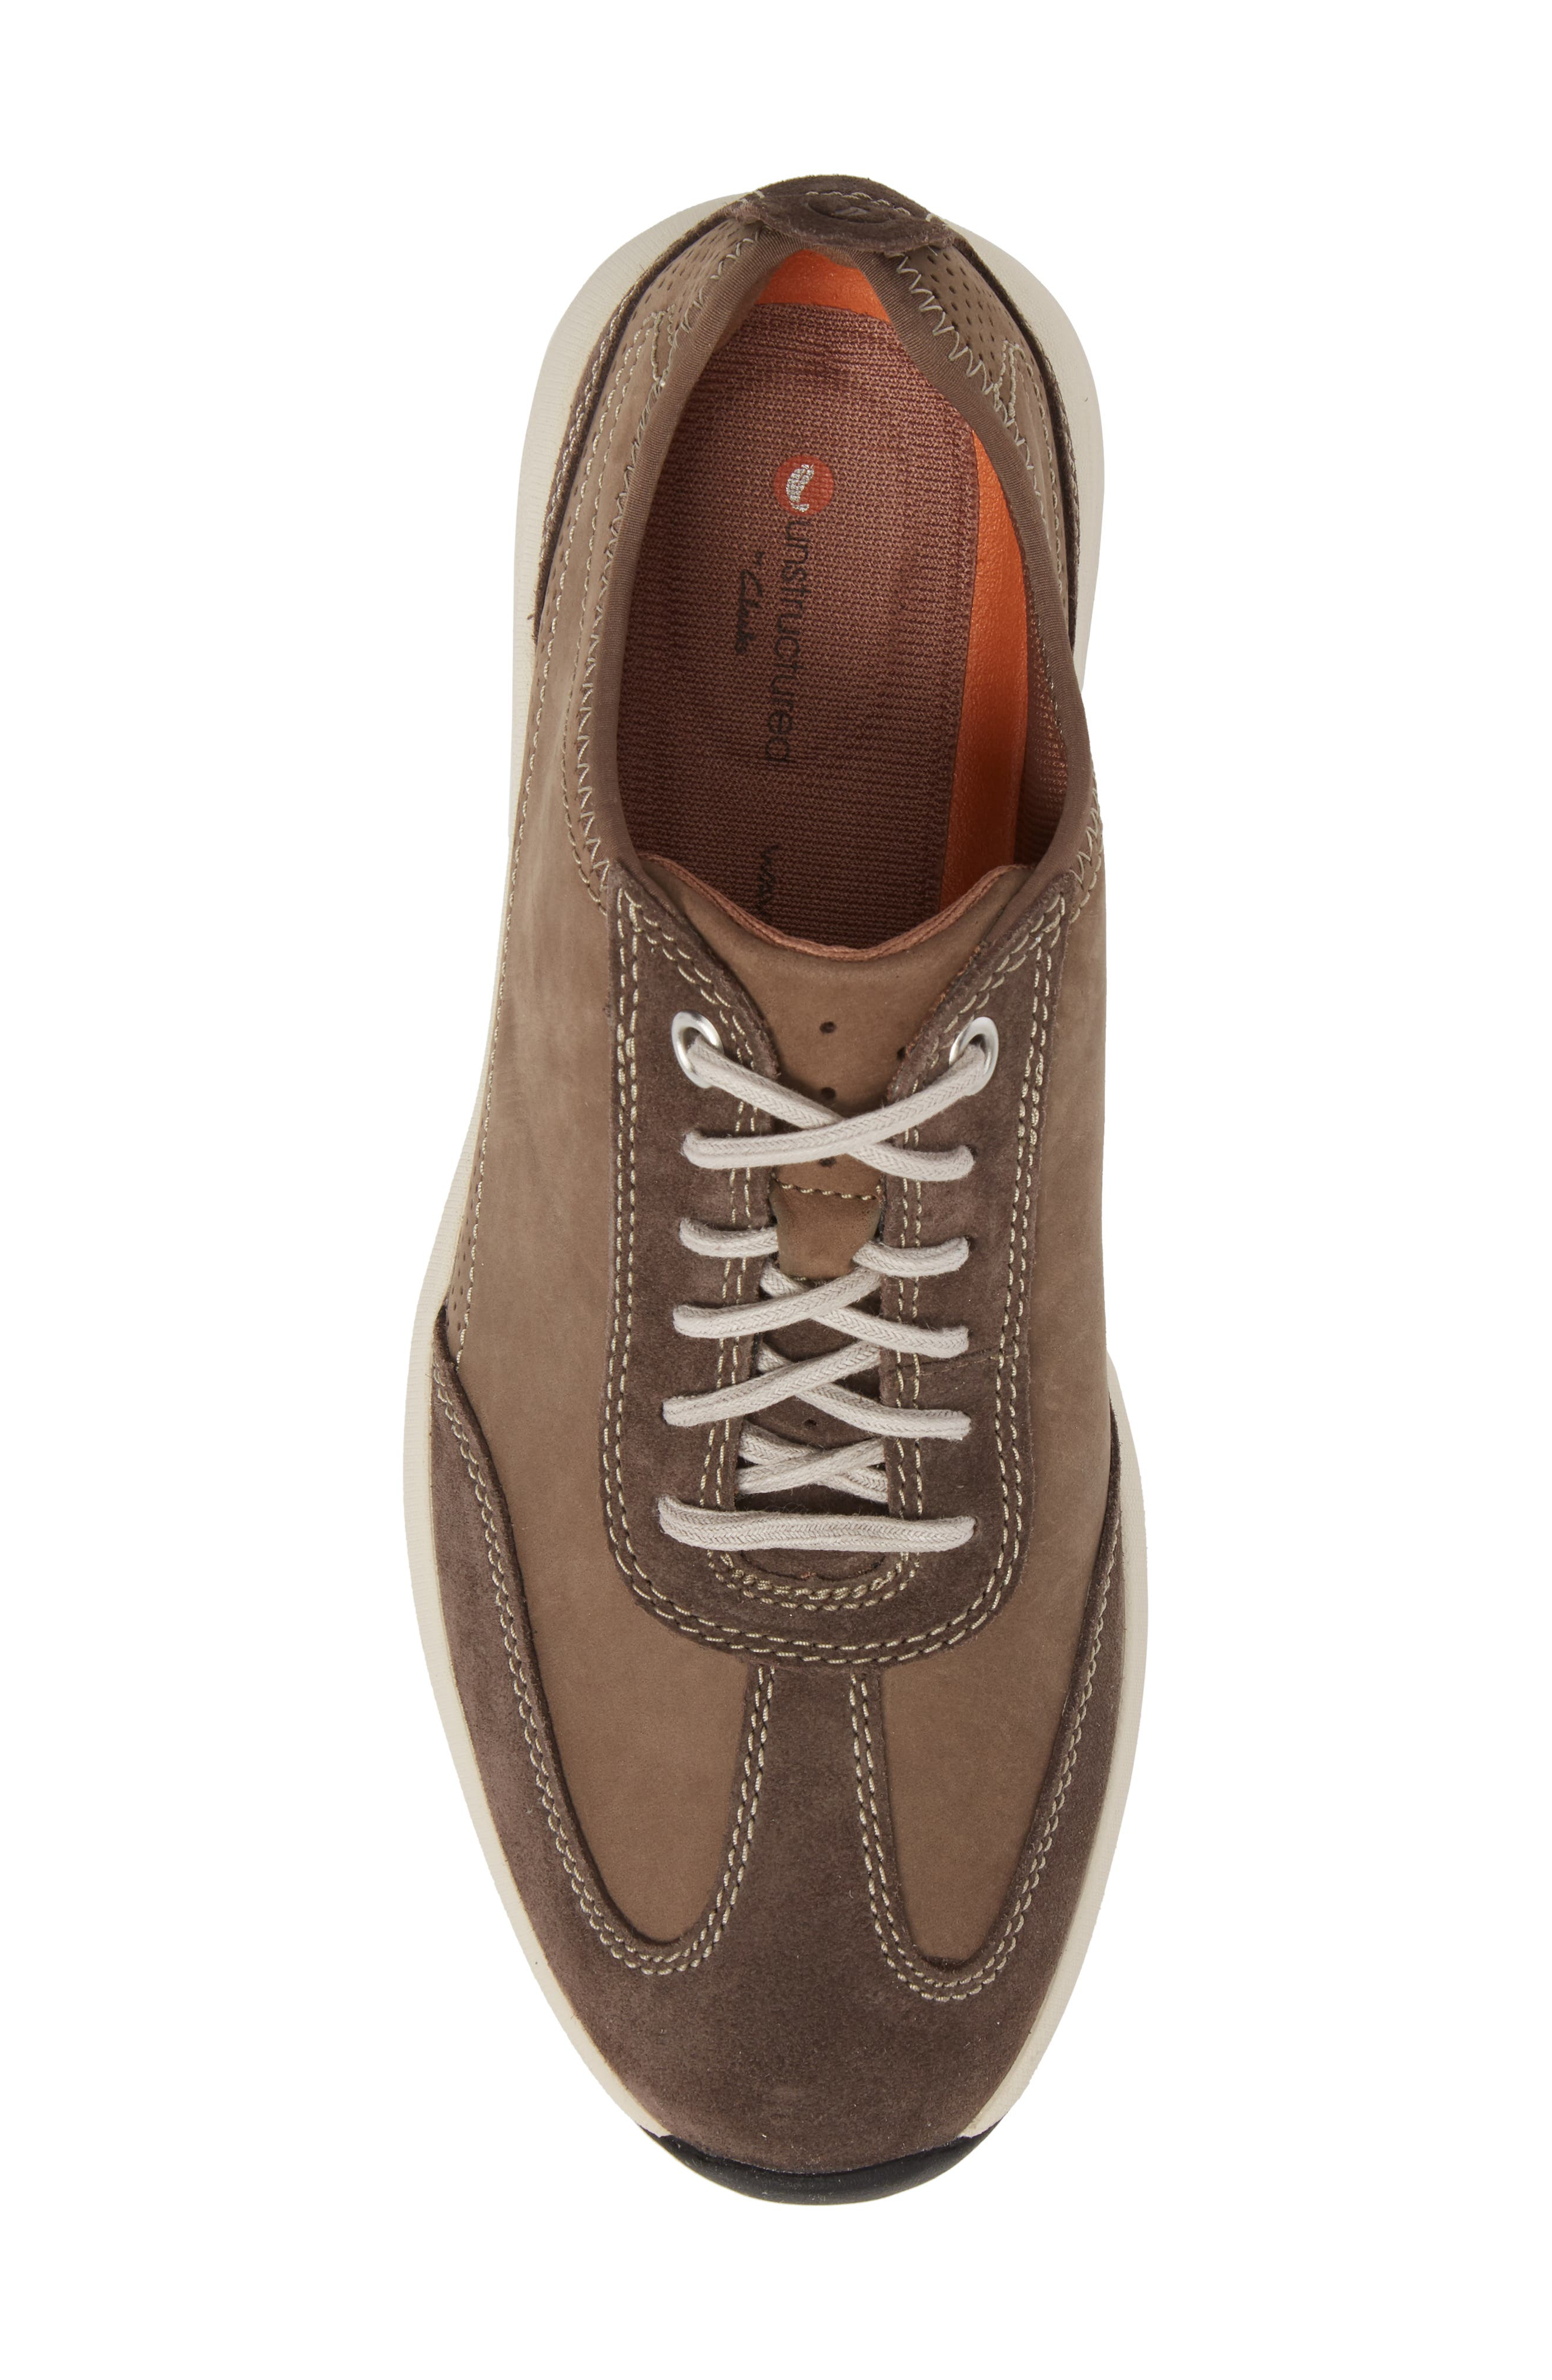 Clarks<sup>®</sup> Un Coast Low Top Sneaker,                             Alternate thumbnail 5, color,                             279